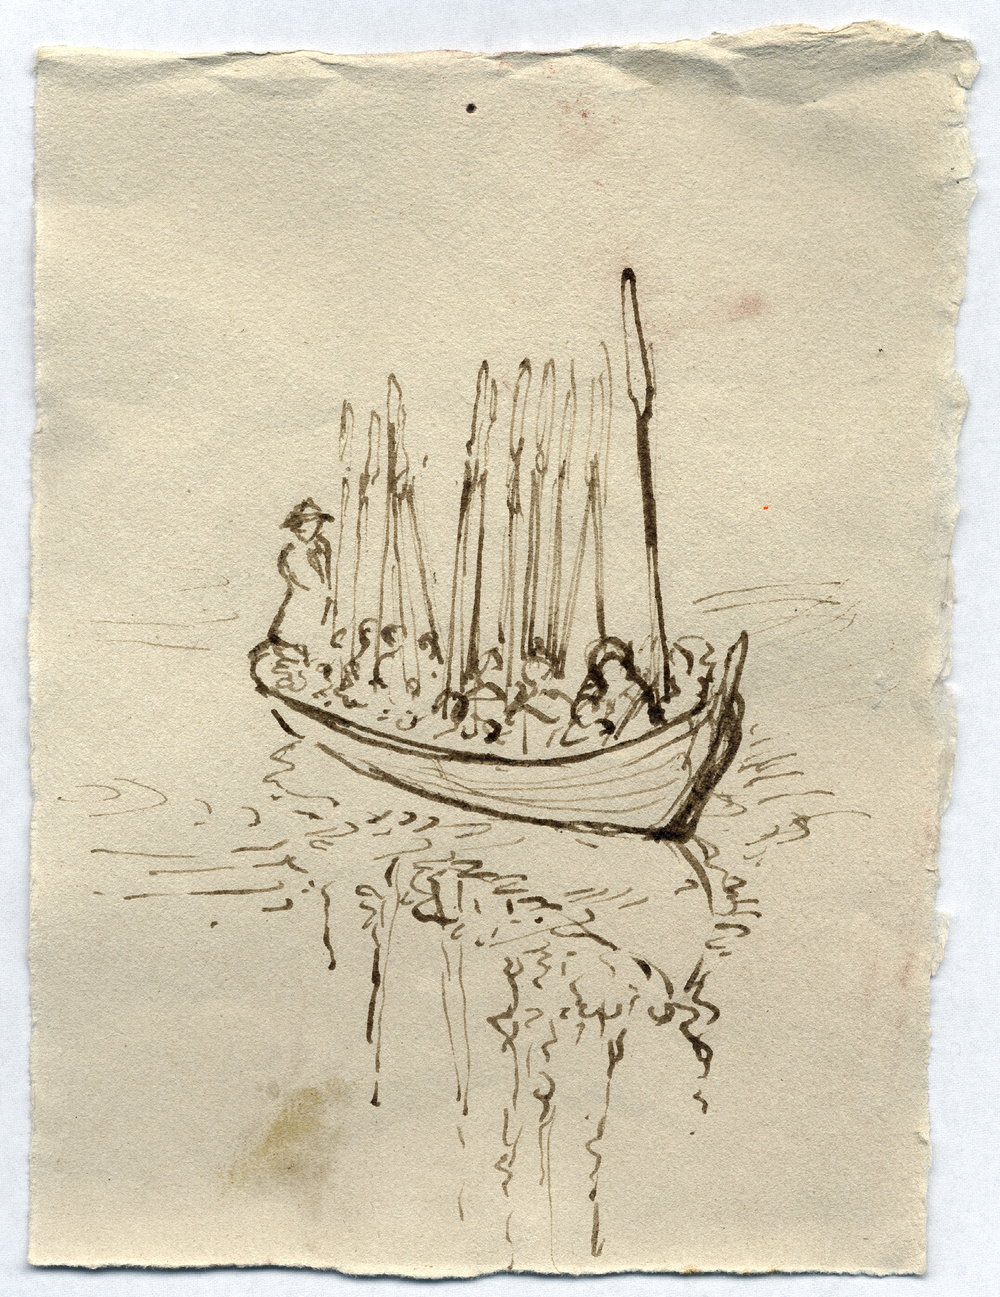 Study for Church Boats, pen and ink on paper, 2007